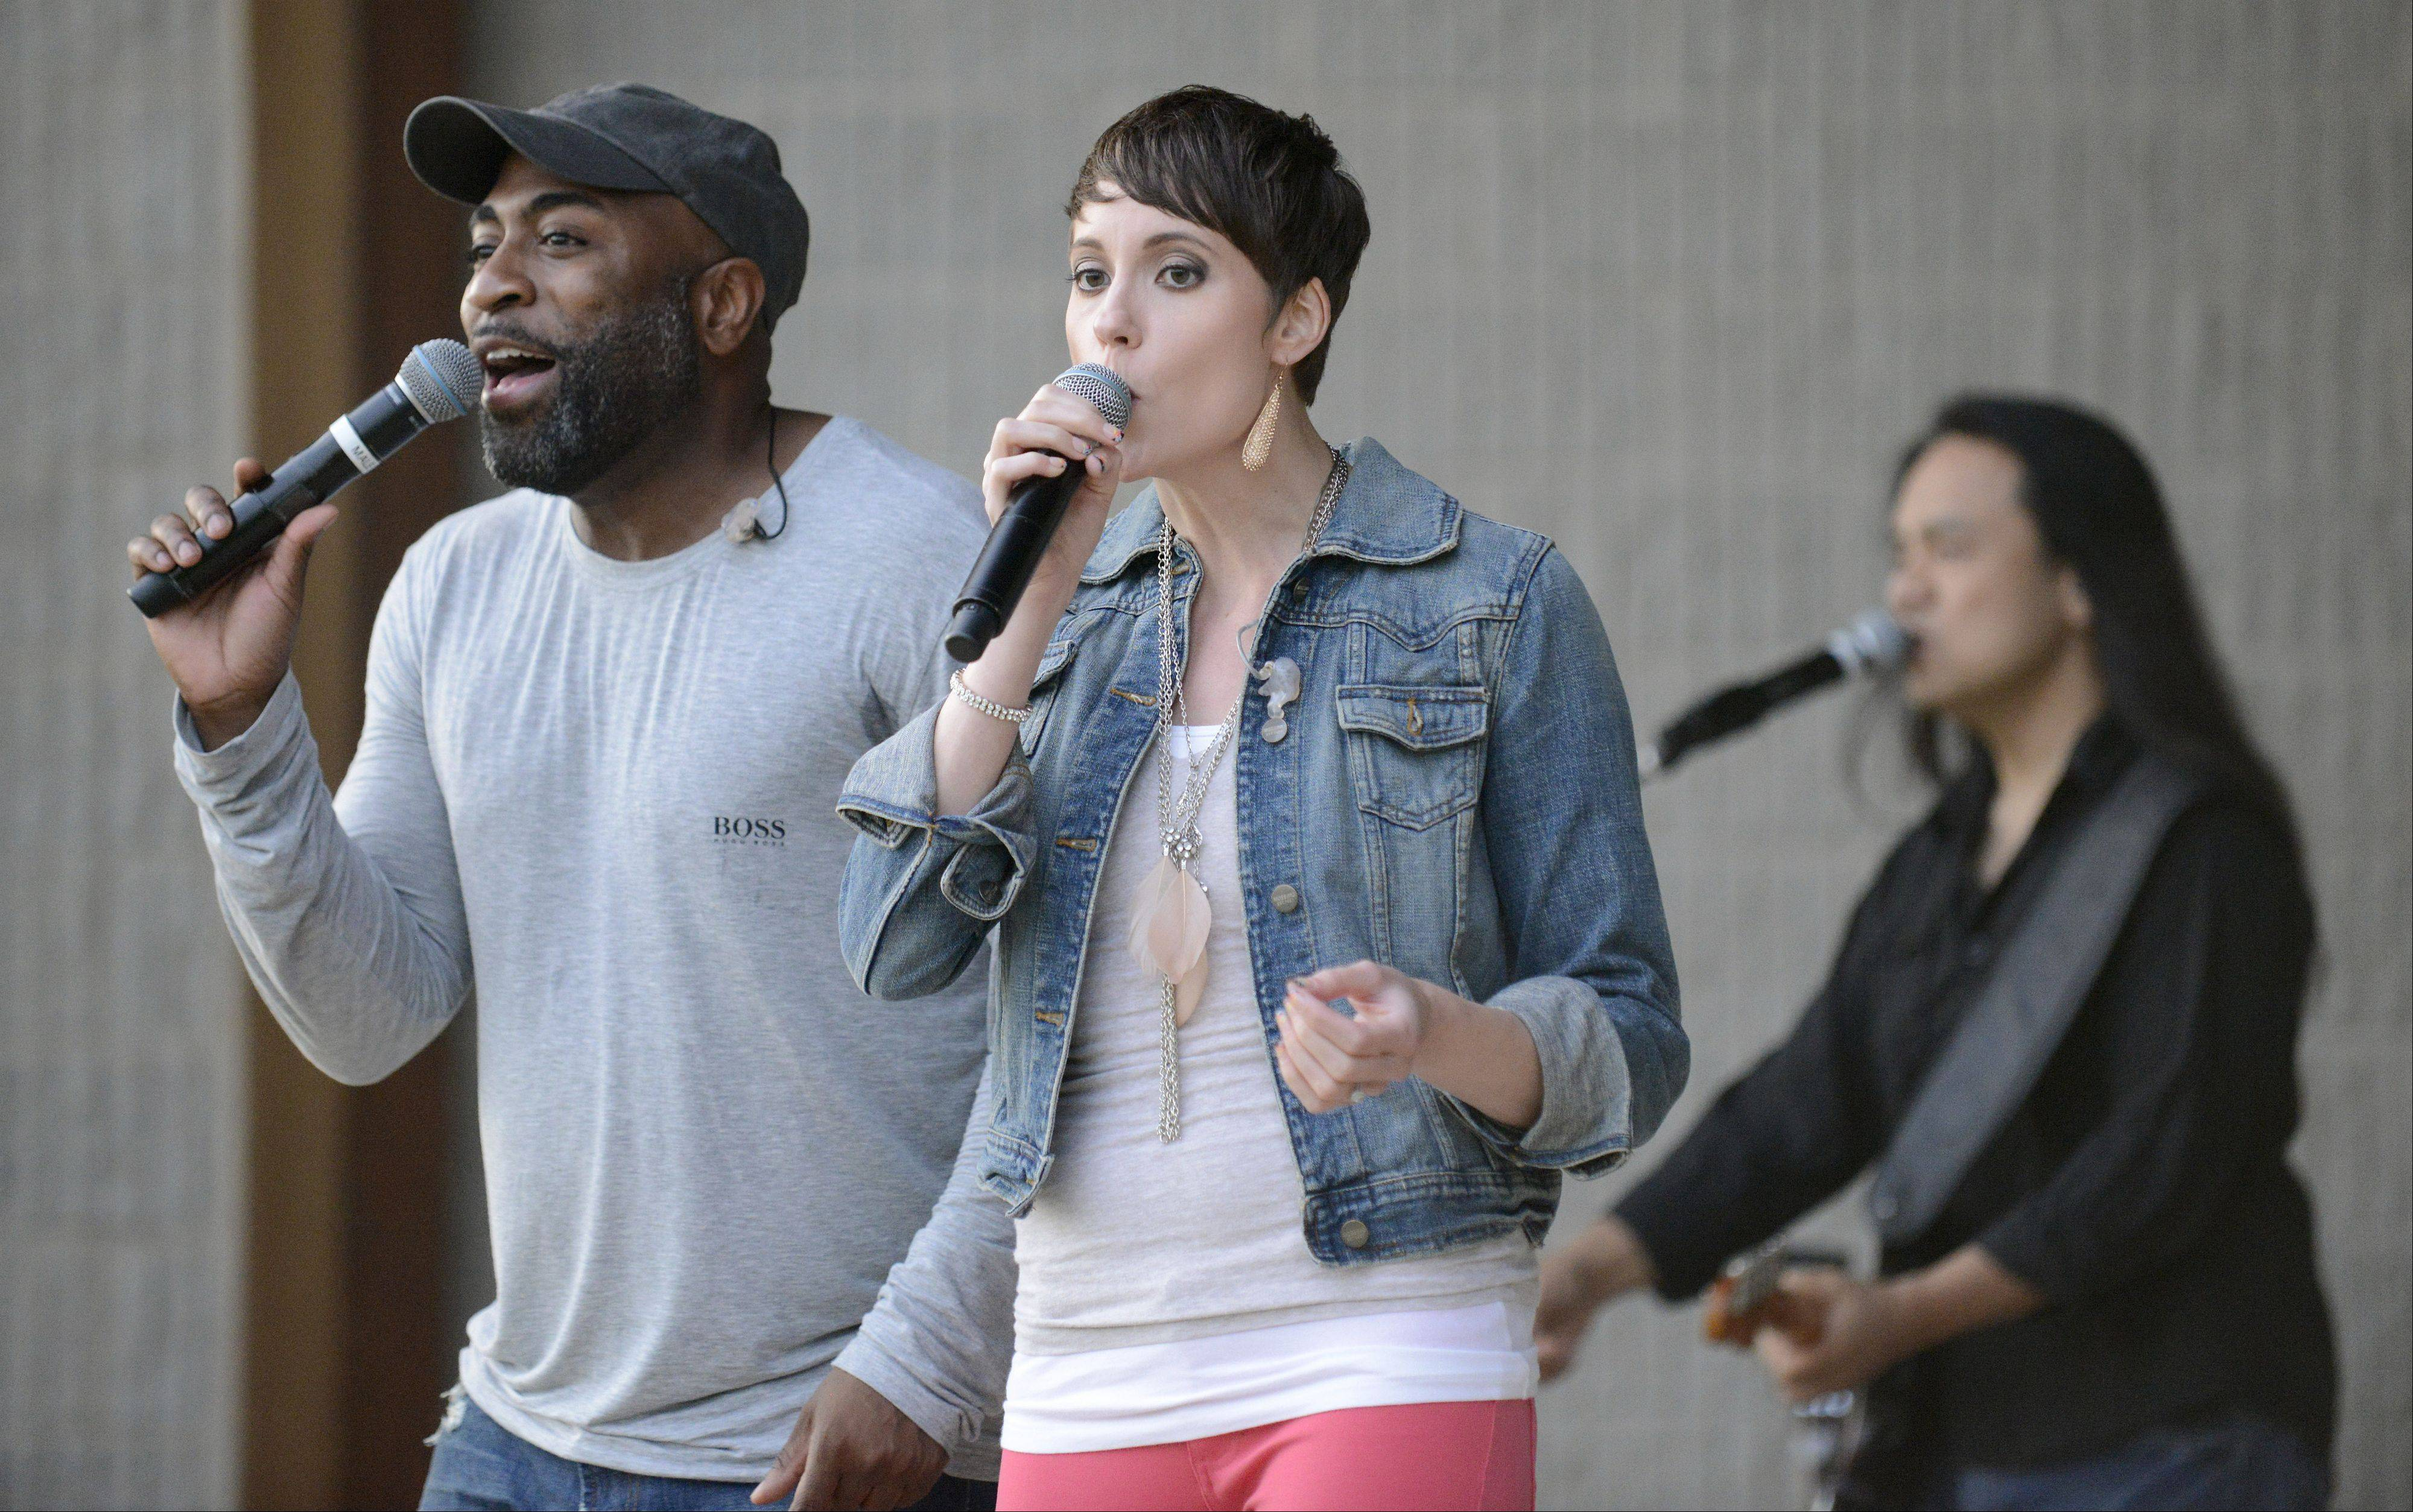 Shannon Stevenson, left, Becky Schneider, center, and Domingo Castillo, right, perform with rock cover band Spoken Four at Cary's Summer Celebration in Lions Park.